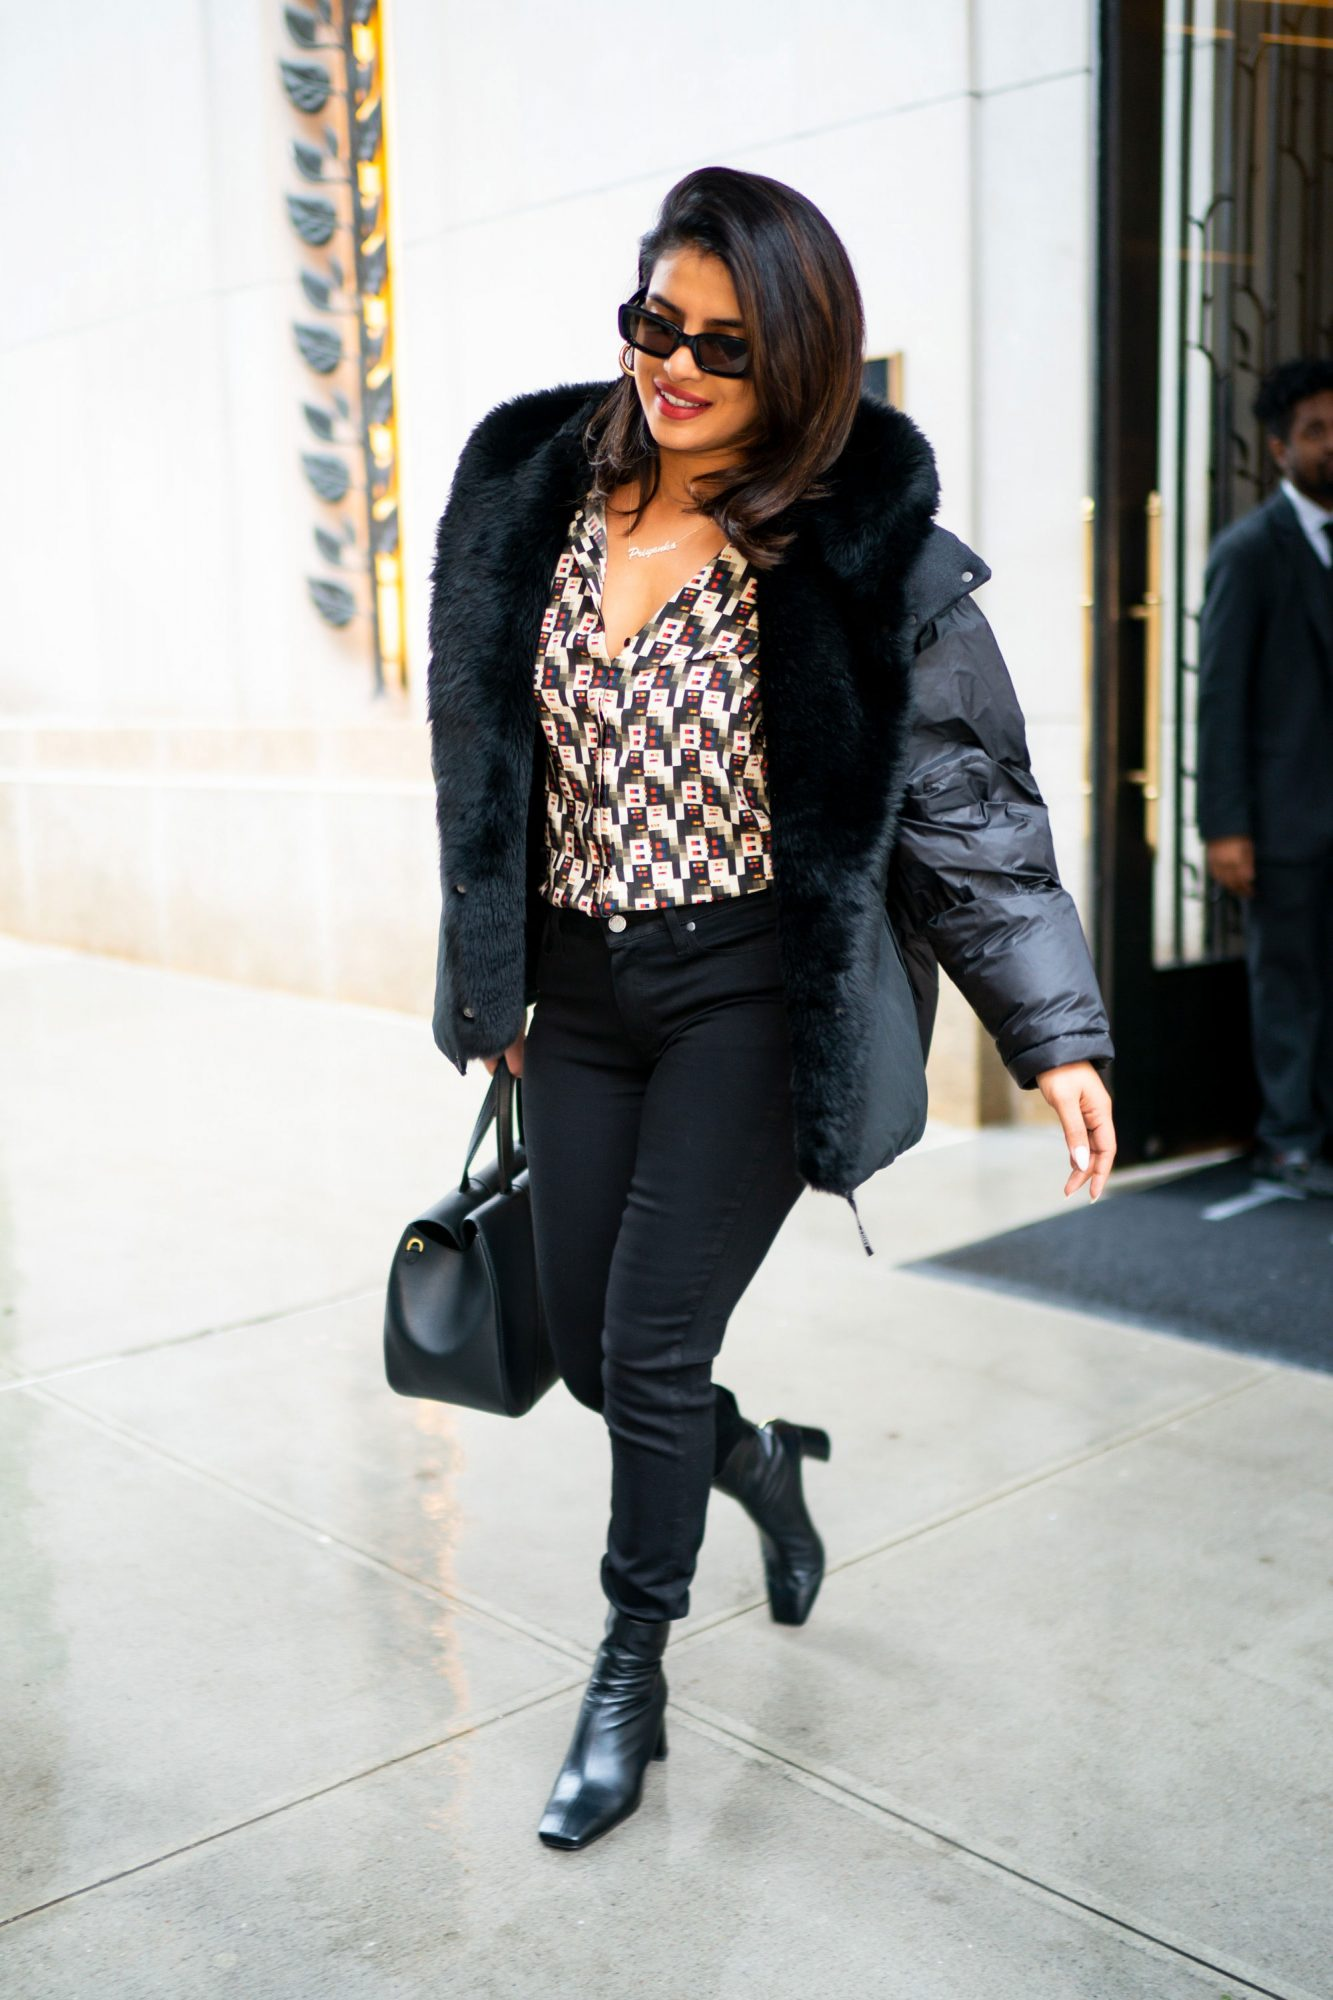 Priyanka Chopra's Latest Airport Outfit Is Proof the Perfect Black Skinny Jeans Exist